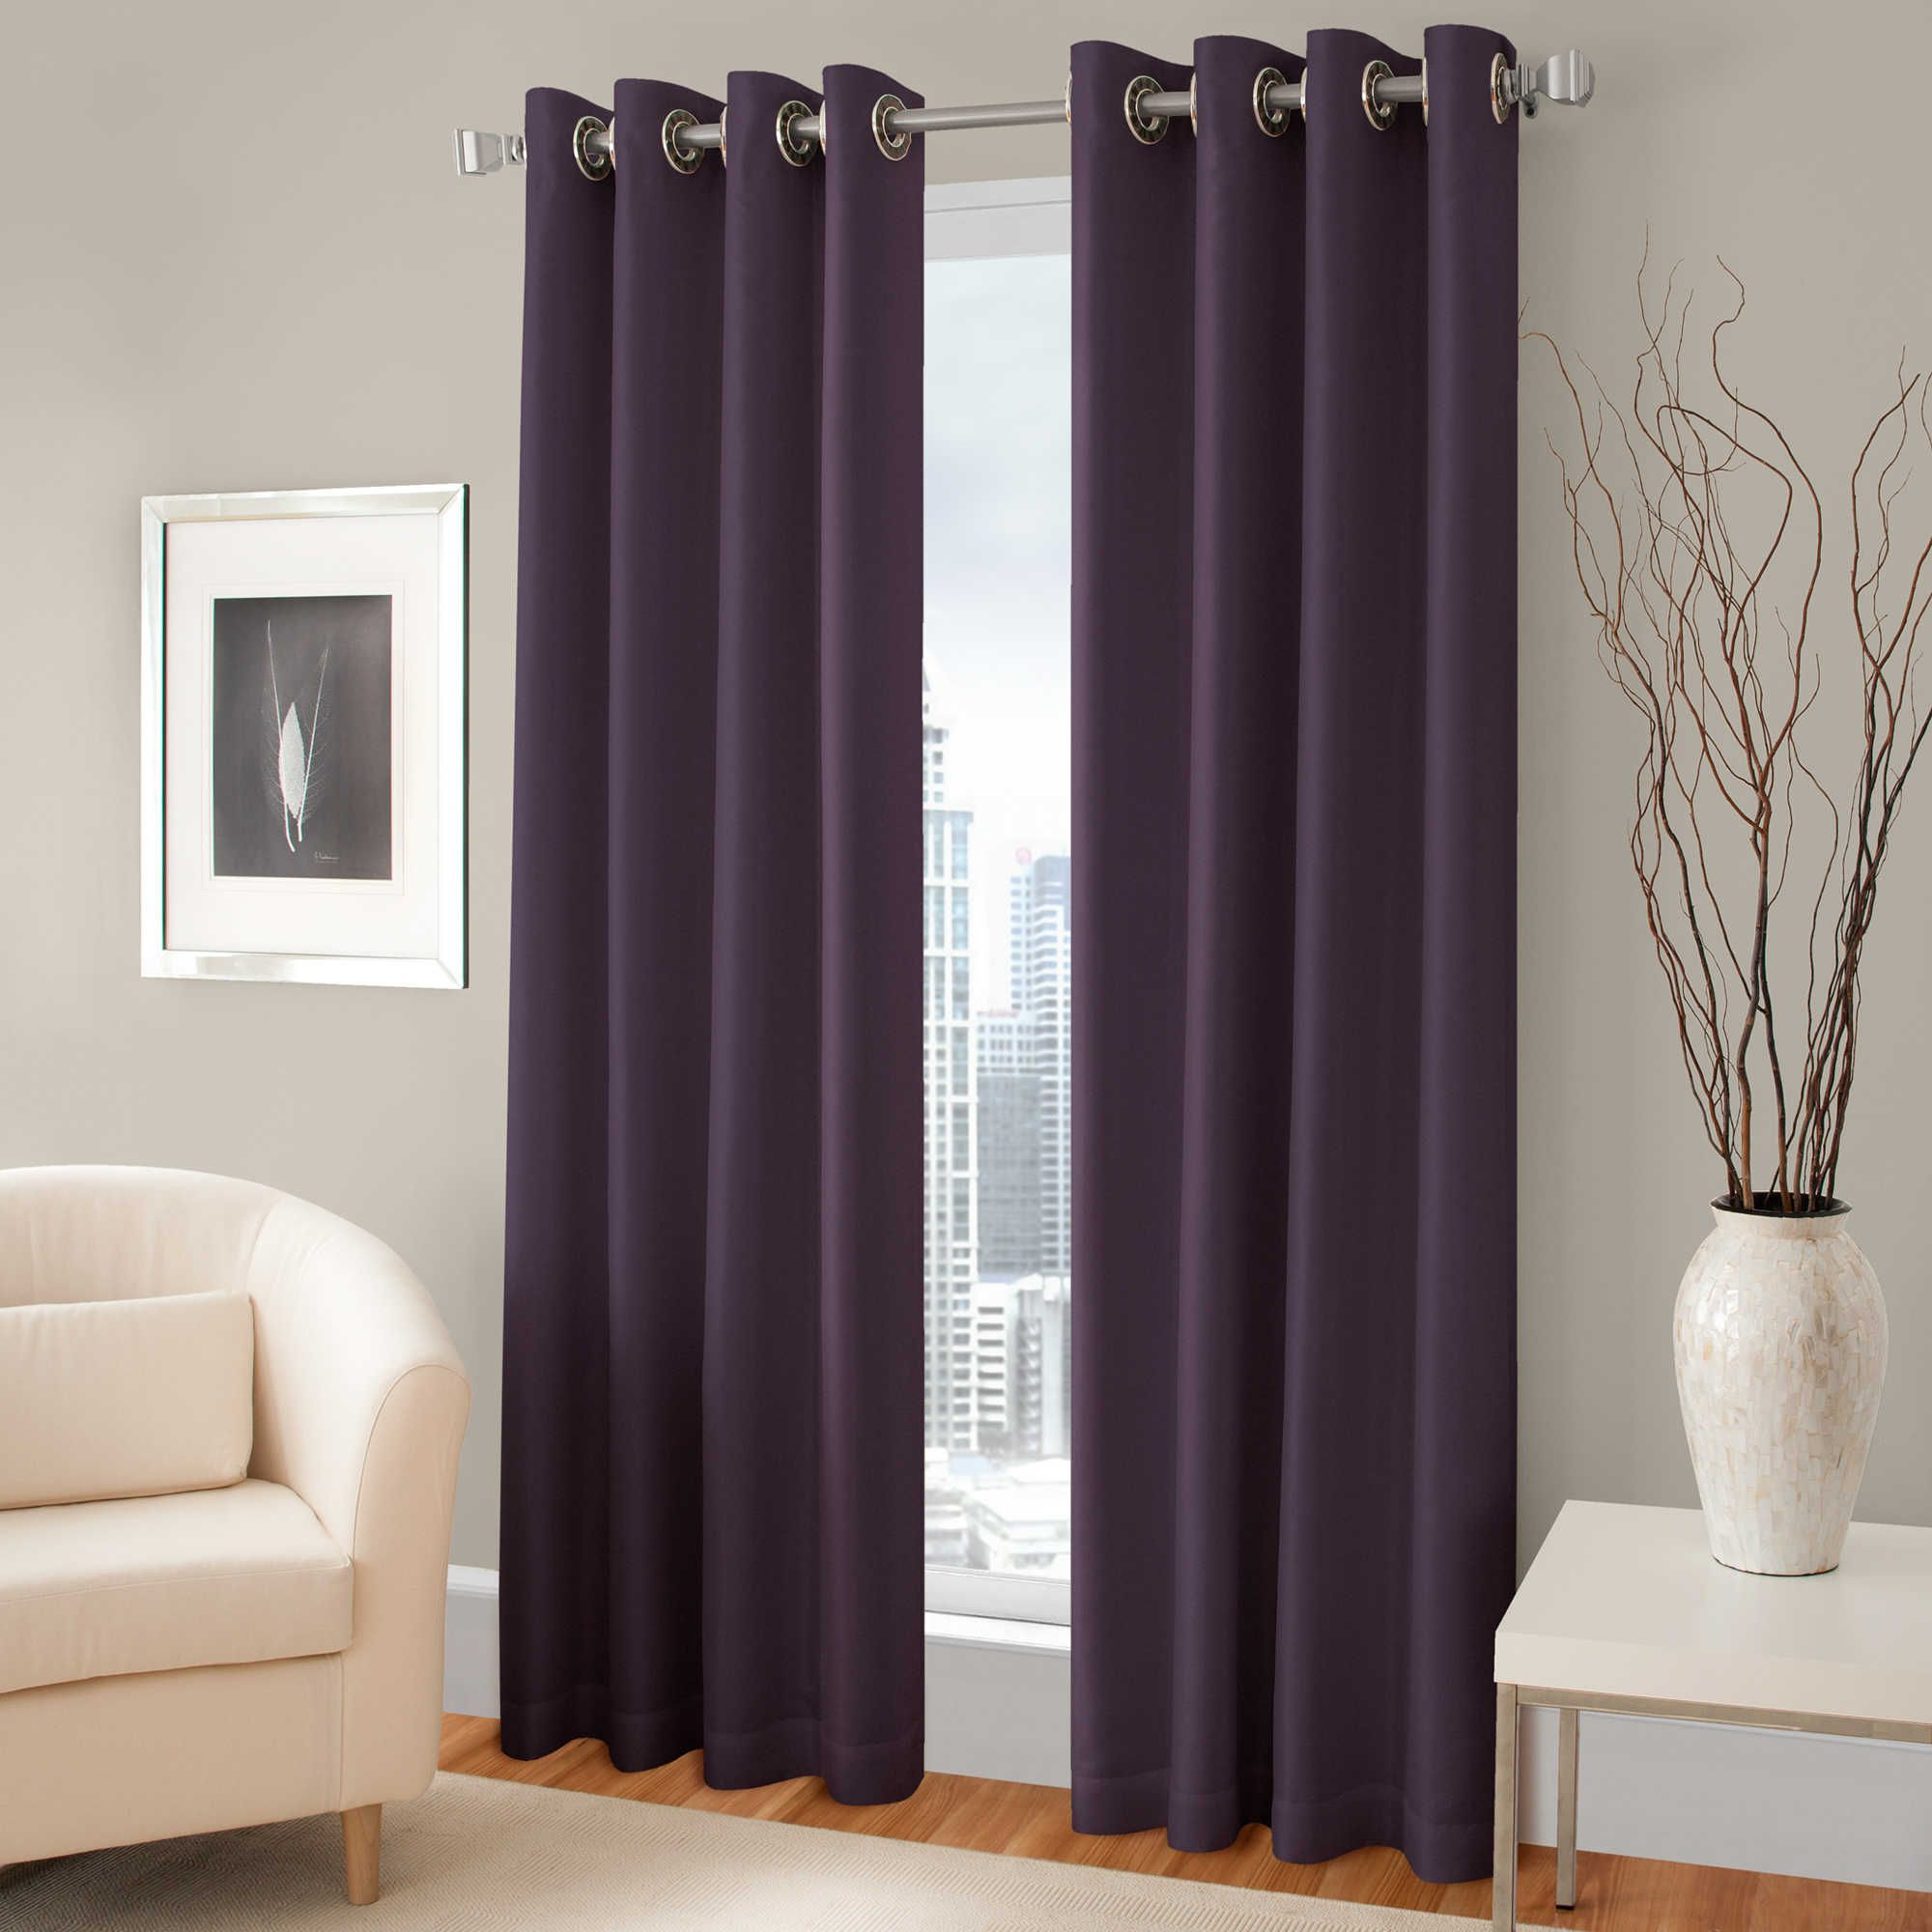 Pretty Purple Room Darkening Curtains With Silver Rods On